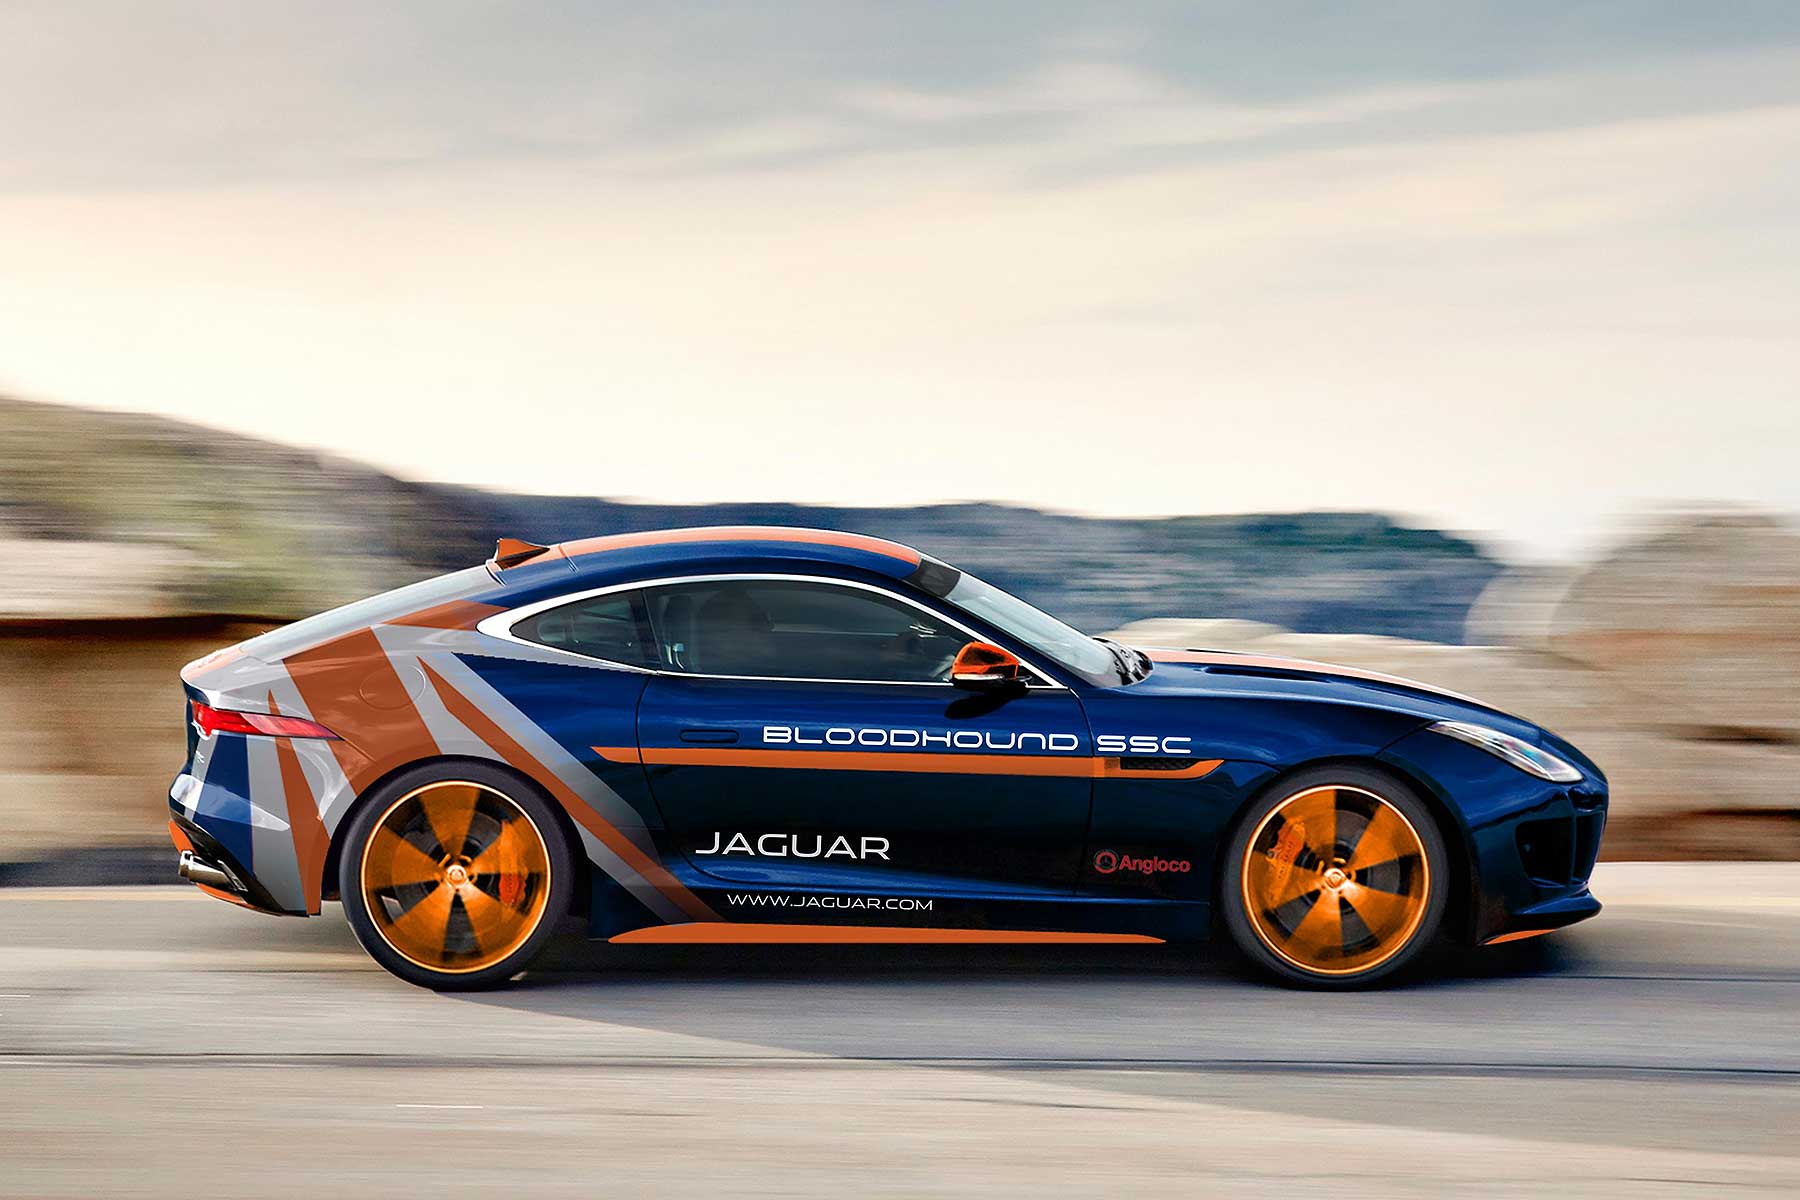 Jaguar F-TYPE Bloodhound SSC